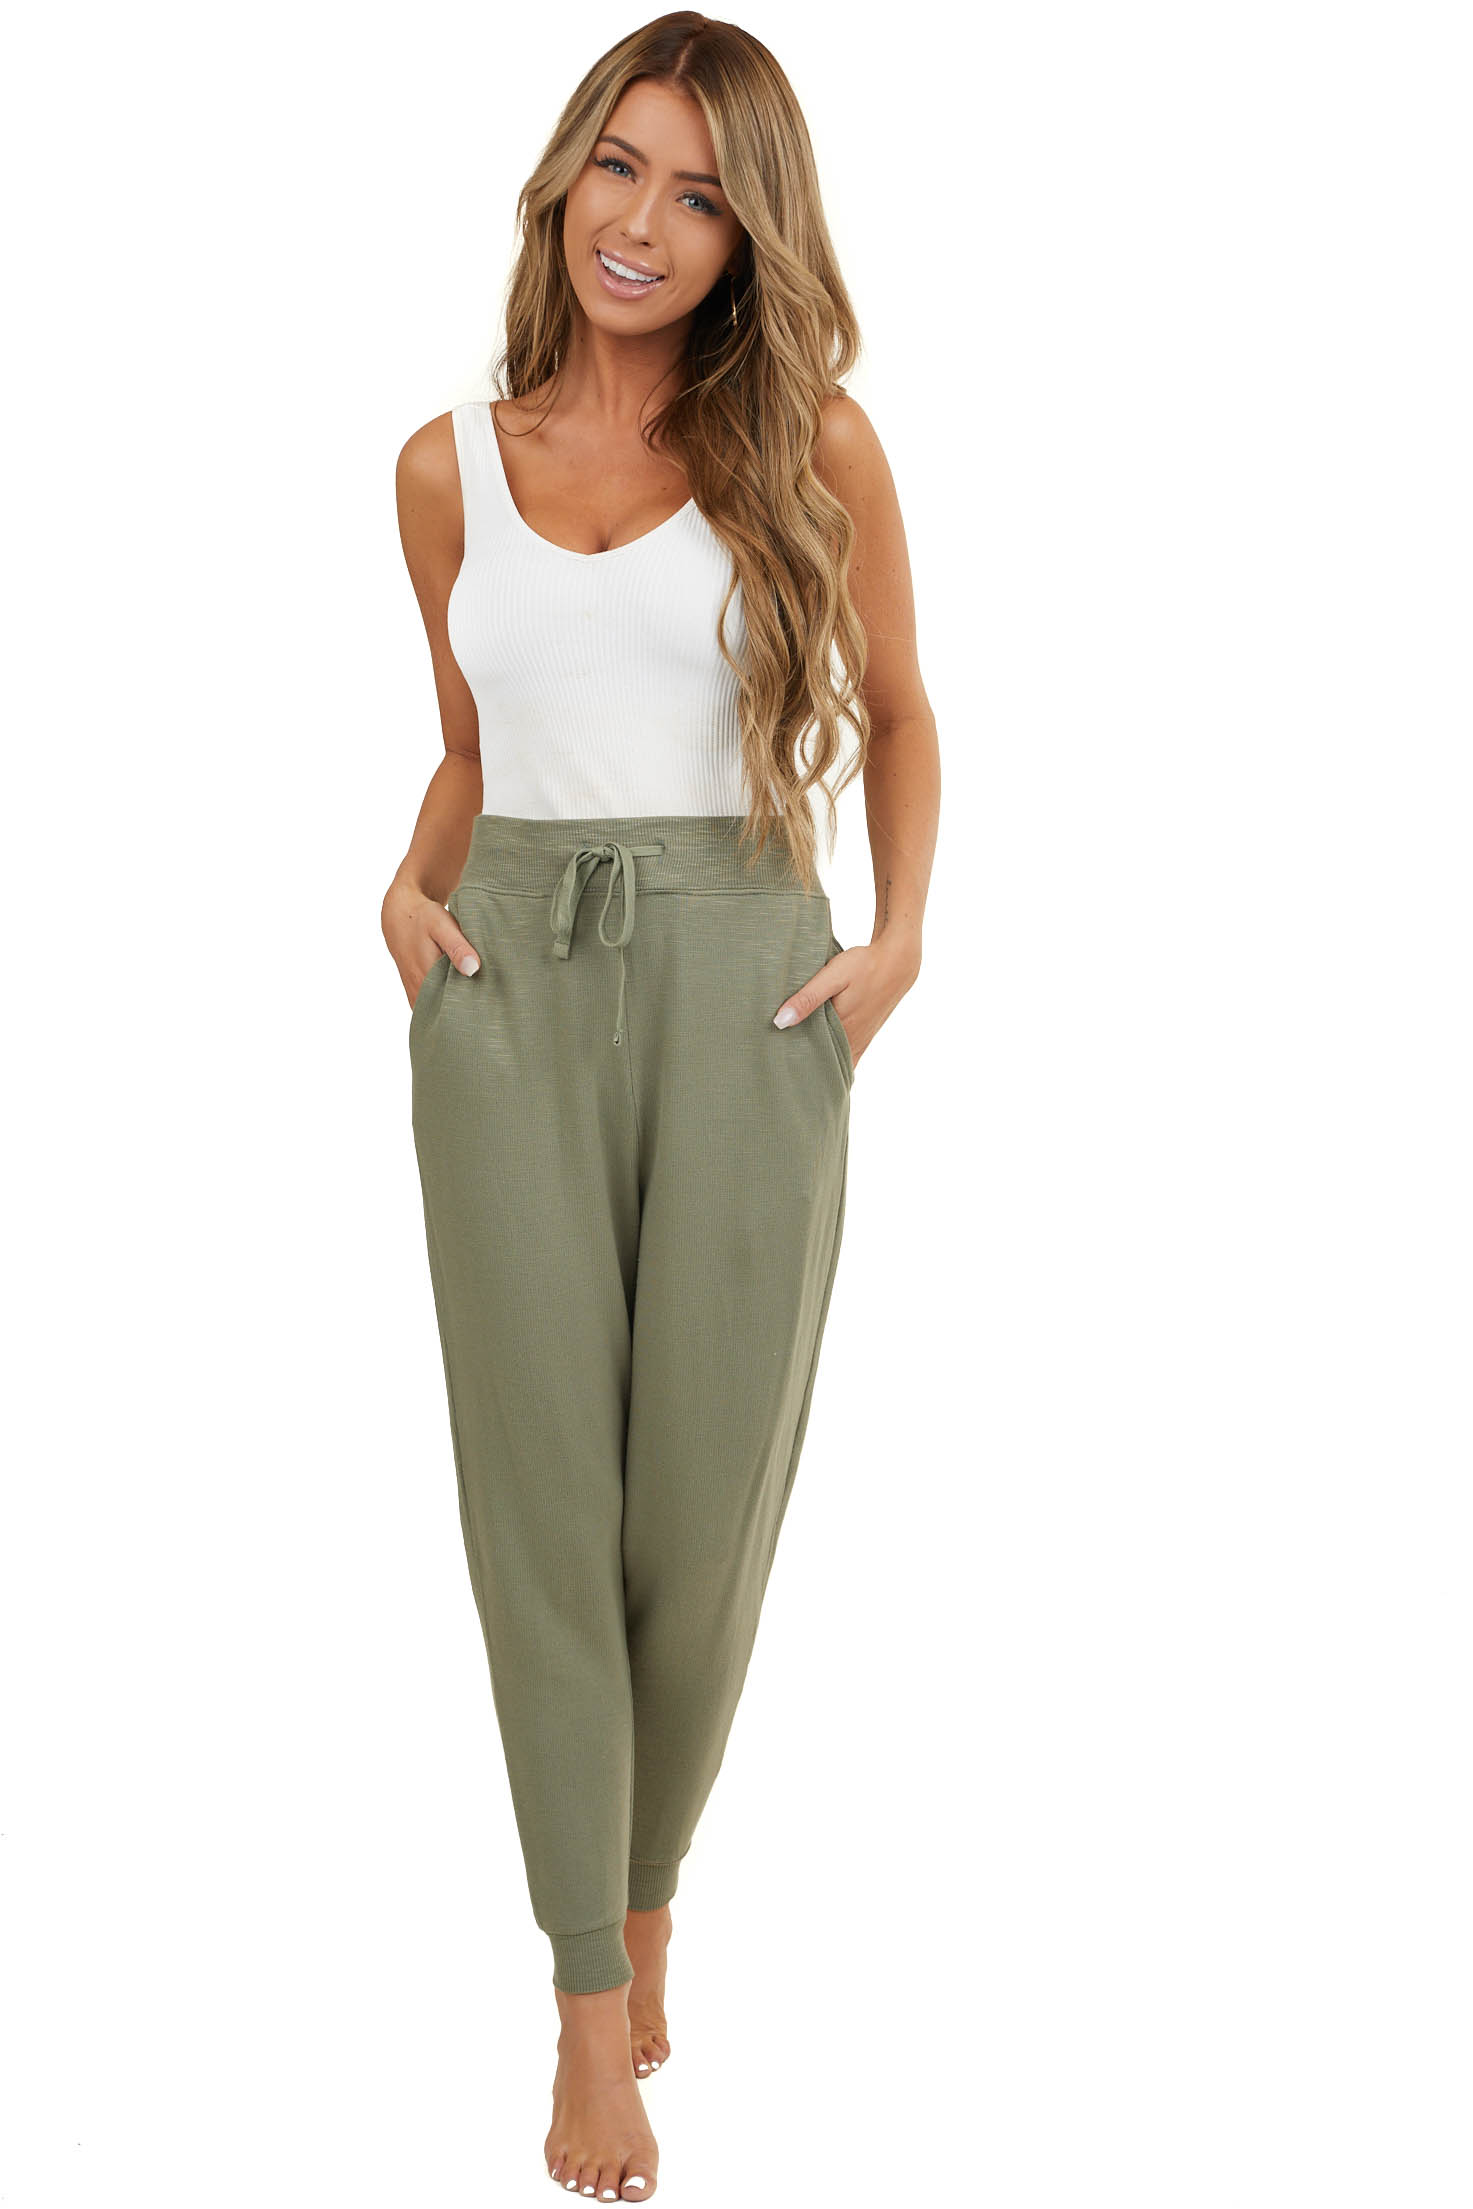 Dusty Sage Knit Joggers with Drawstring and Side Pockets